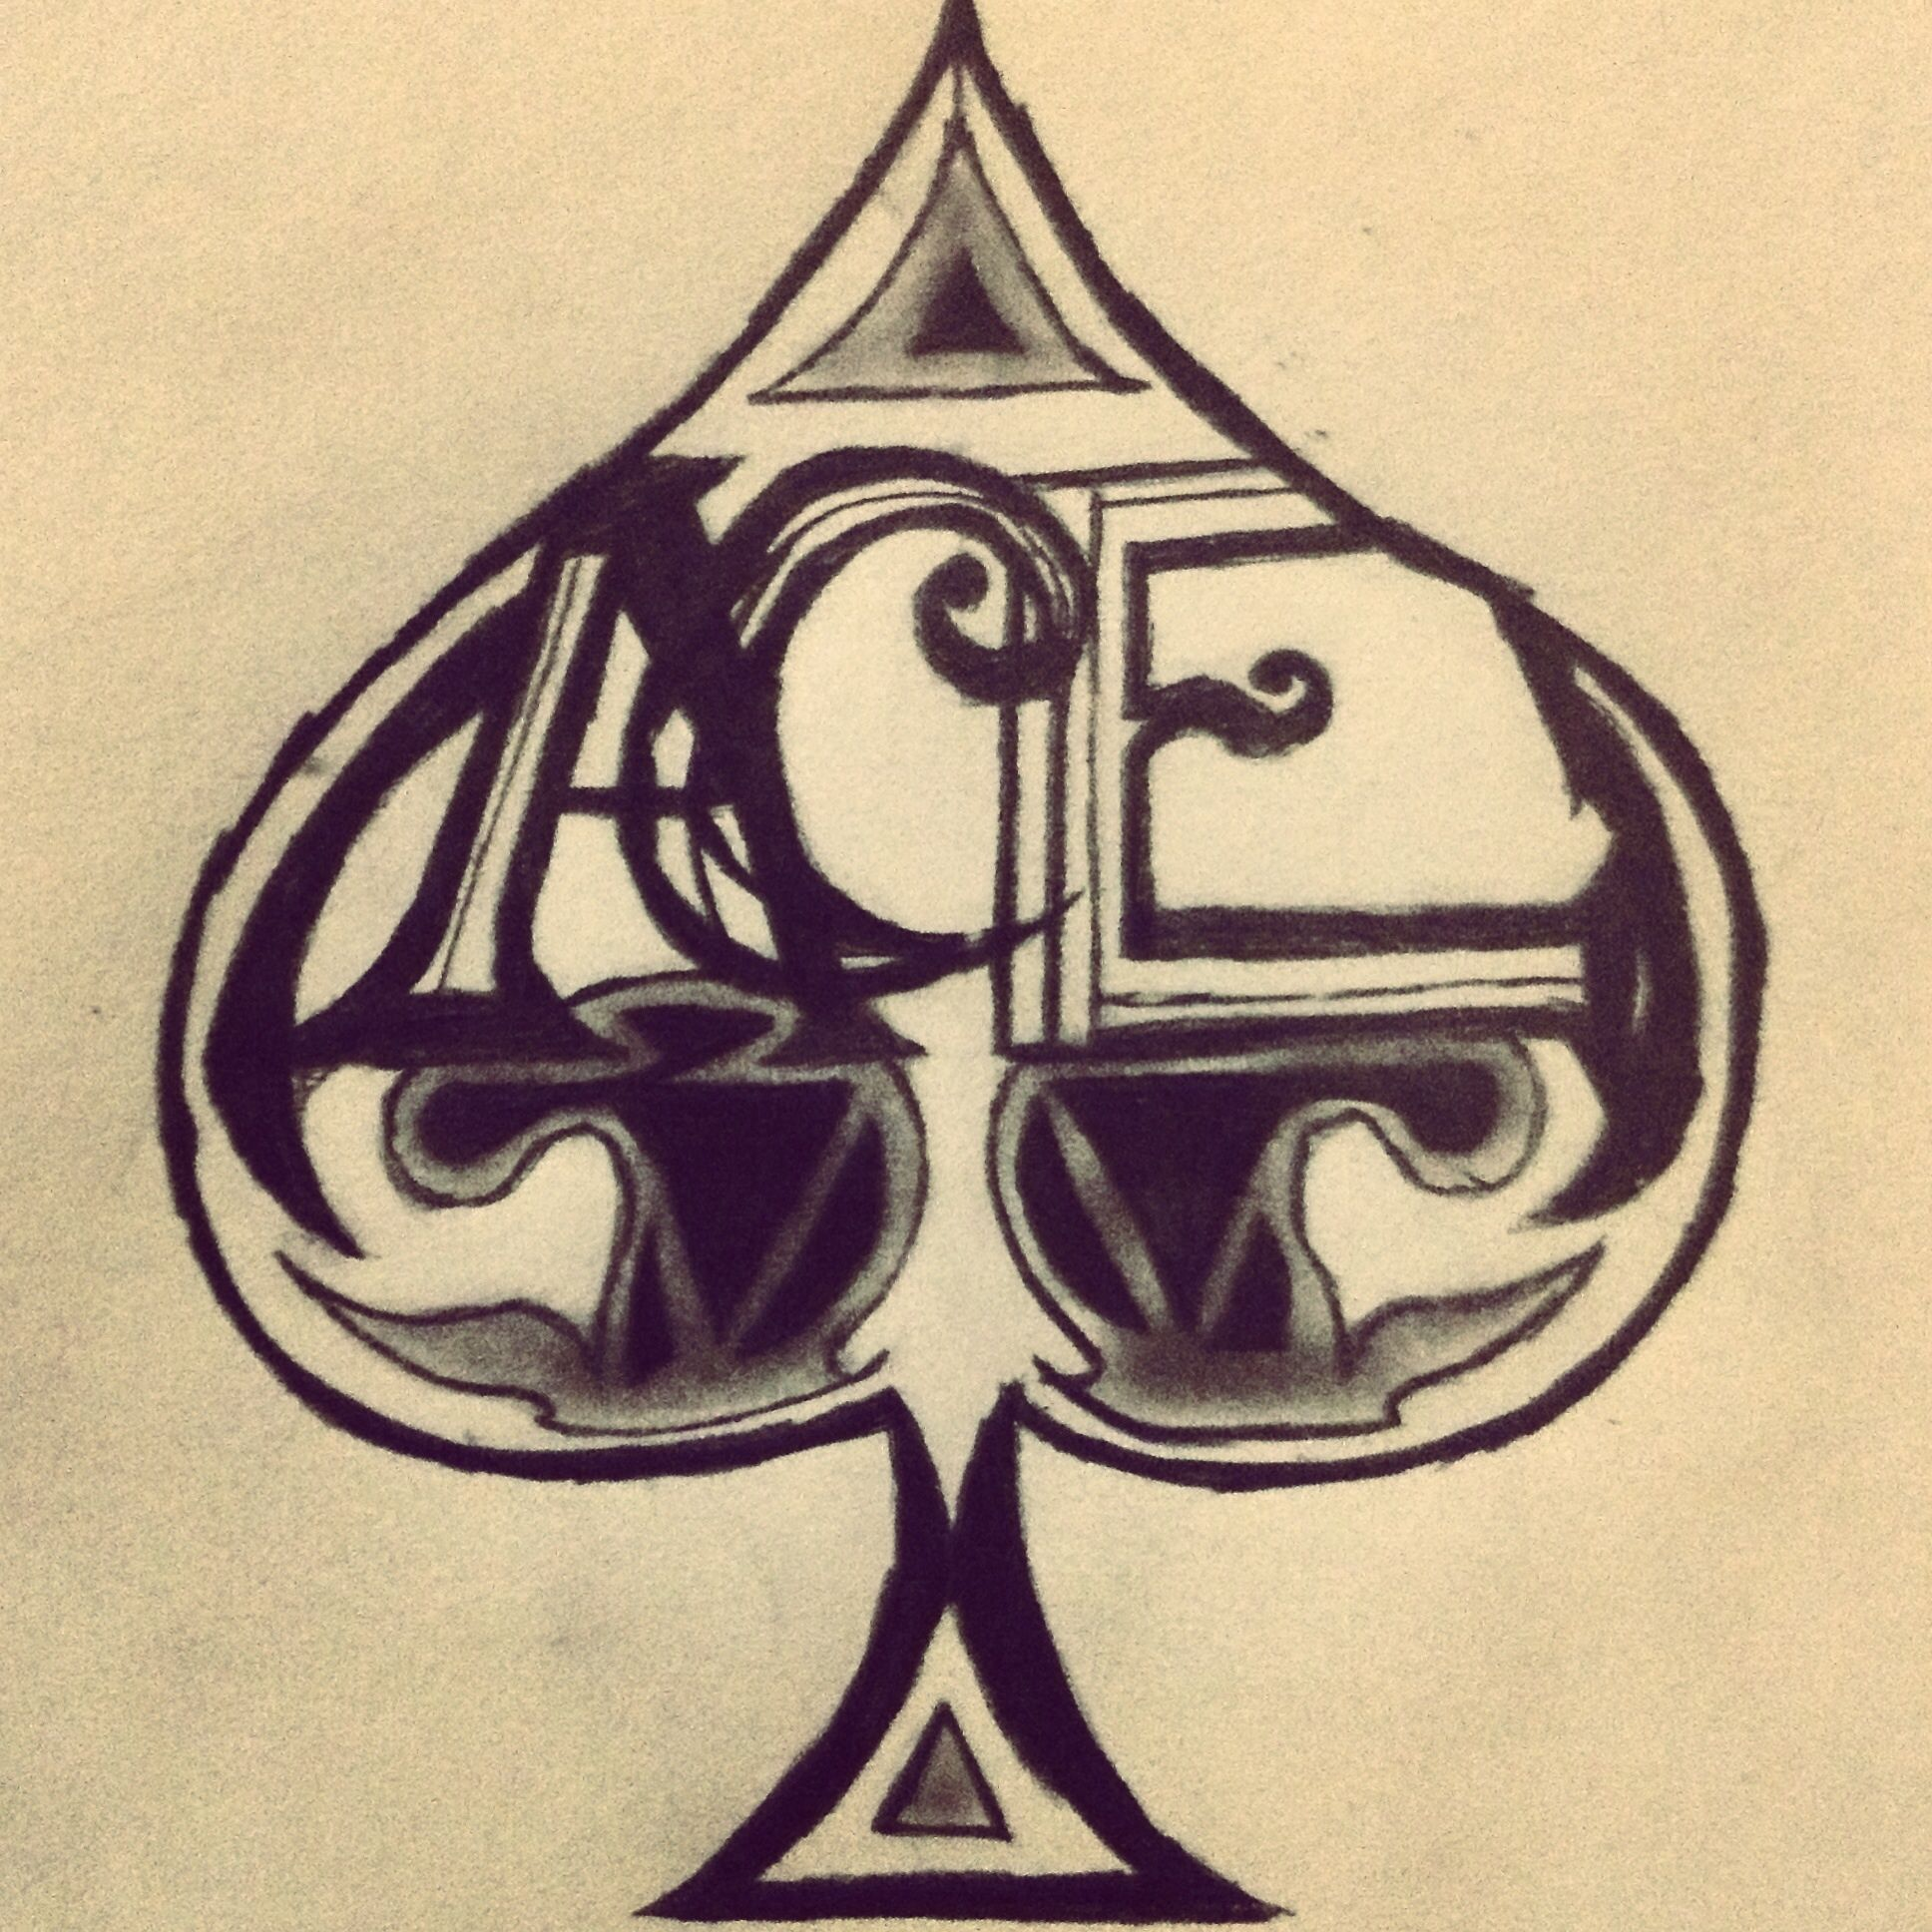 Ace of spades drawing